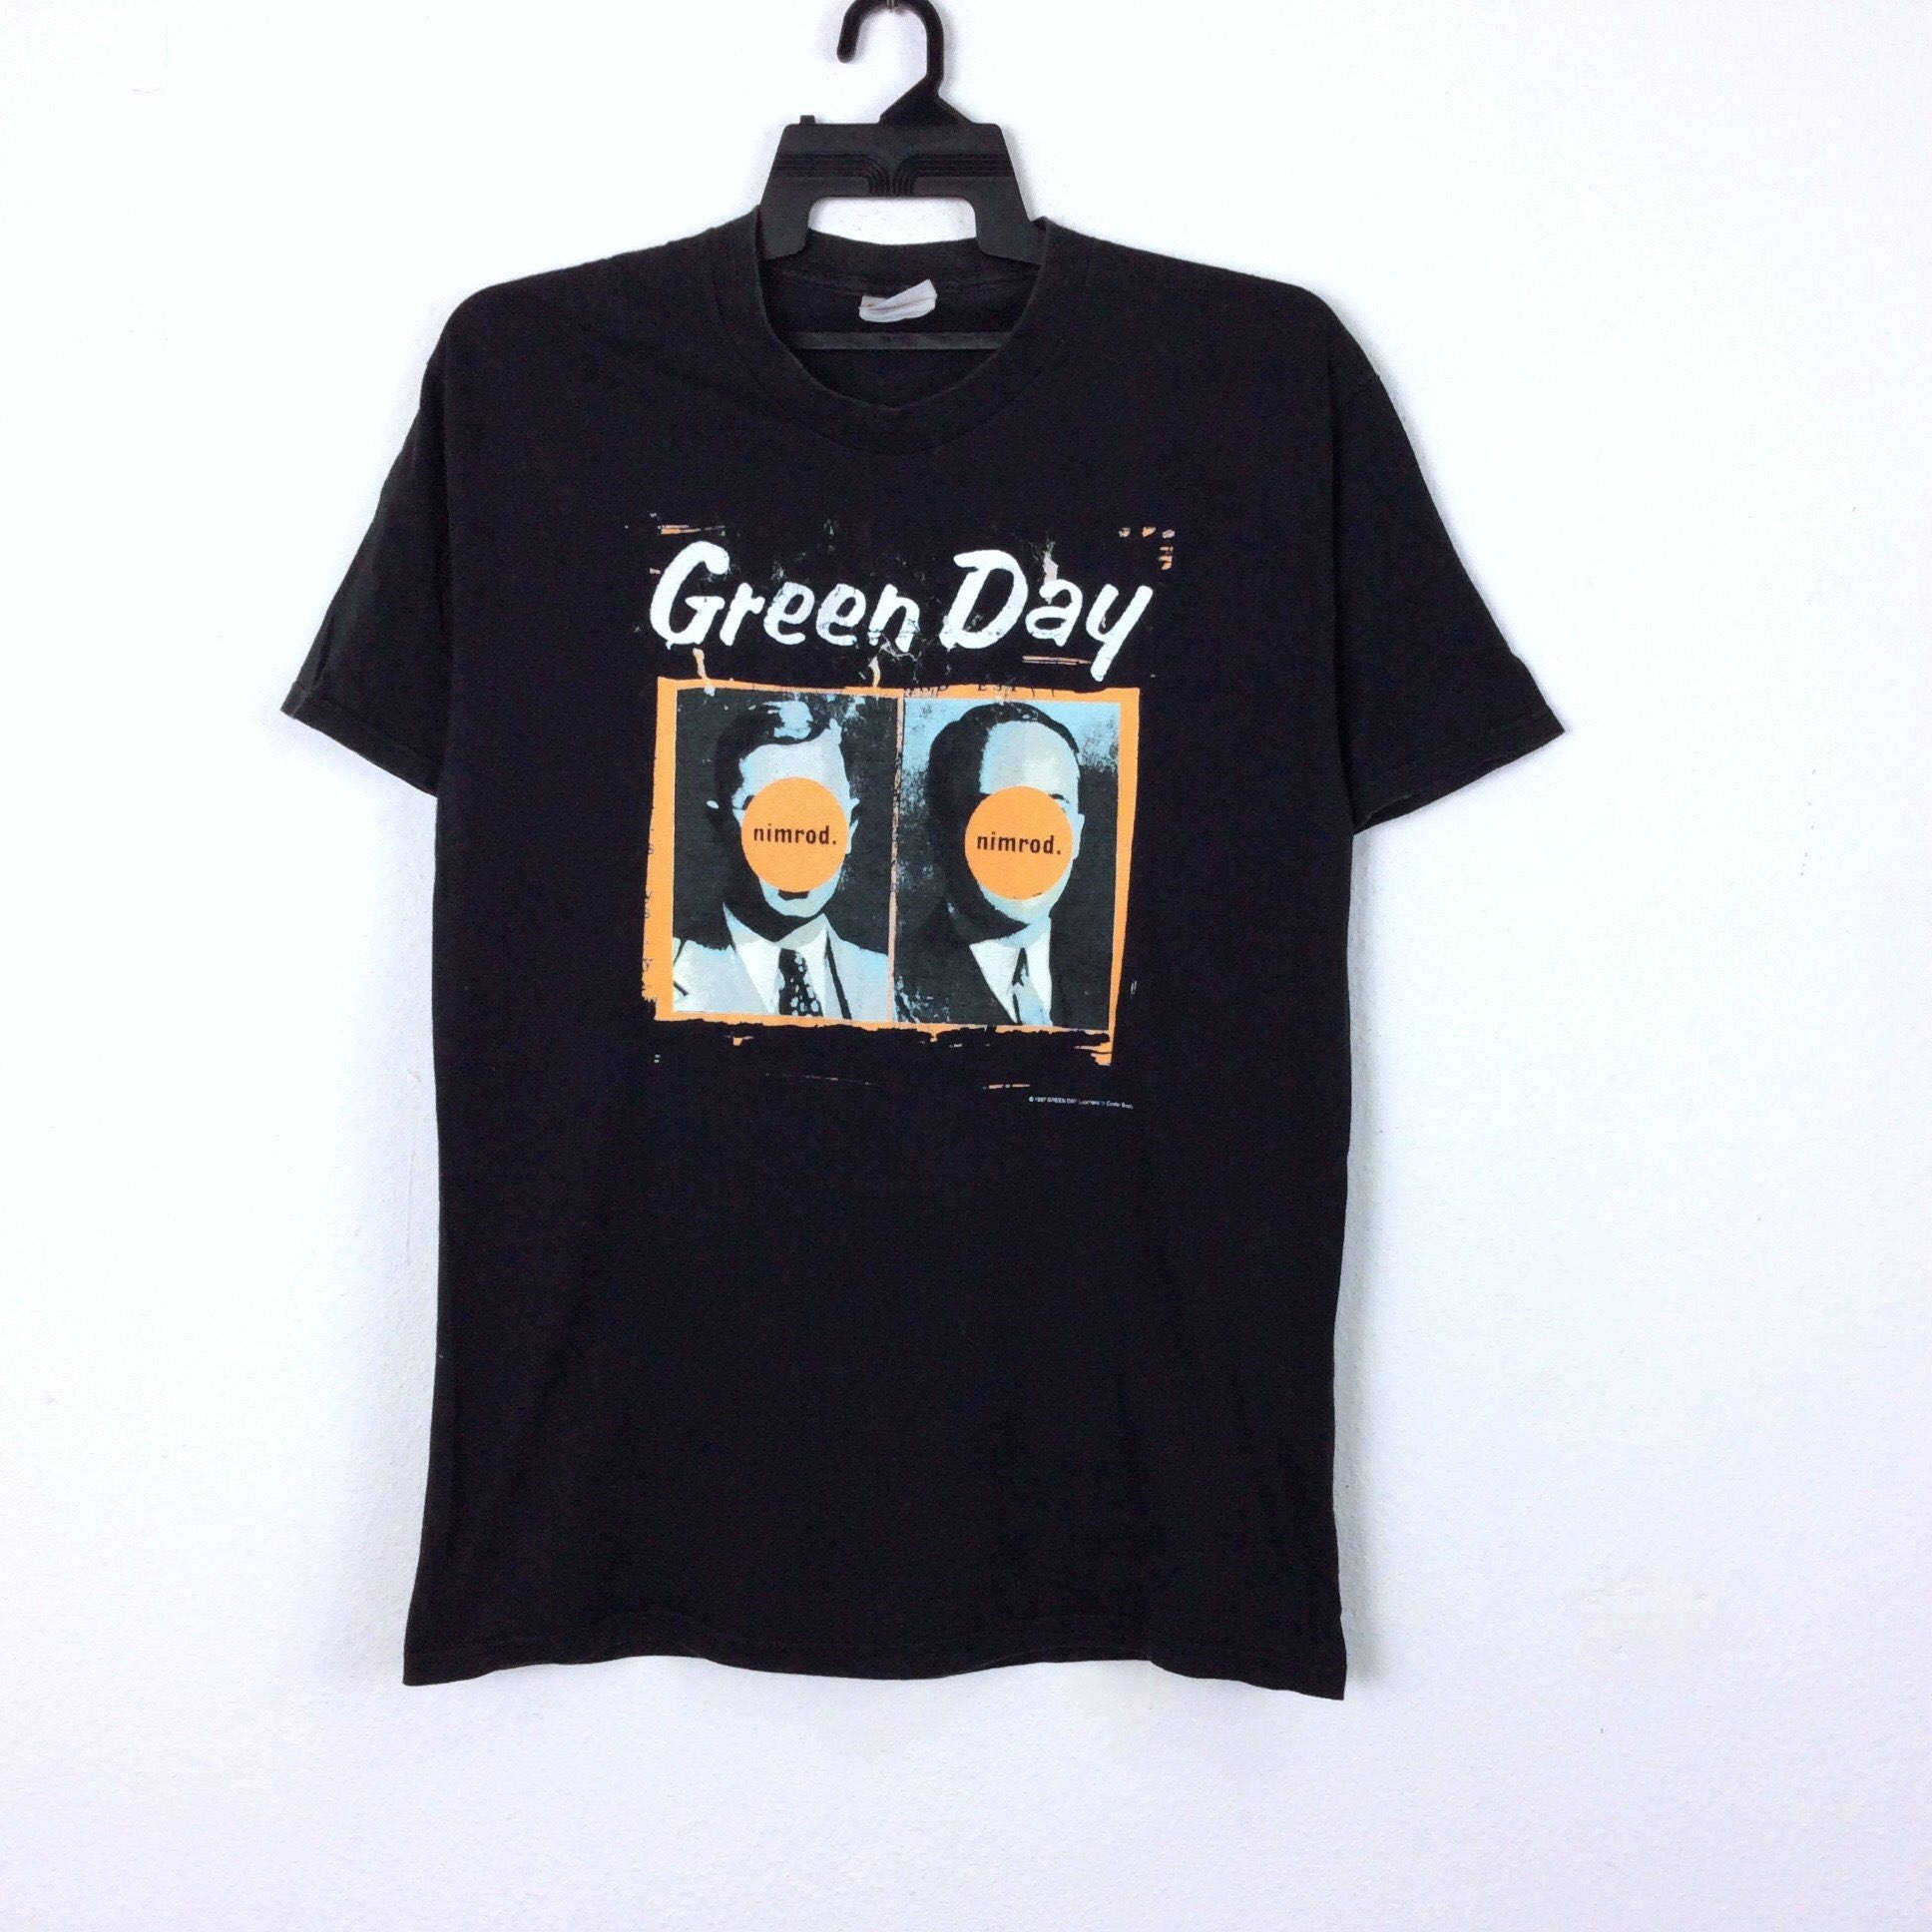 Greenday Nimrod World tour shirt XL with AAA stage pass RSyYph60 ... 88f9075ce57